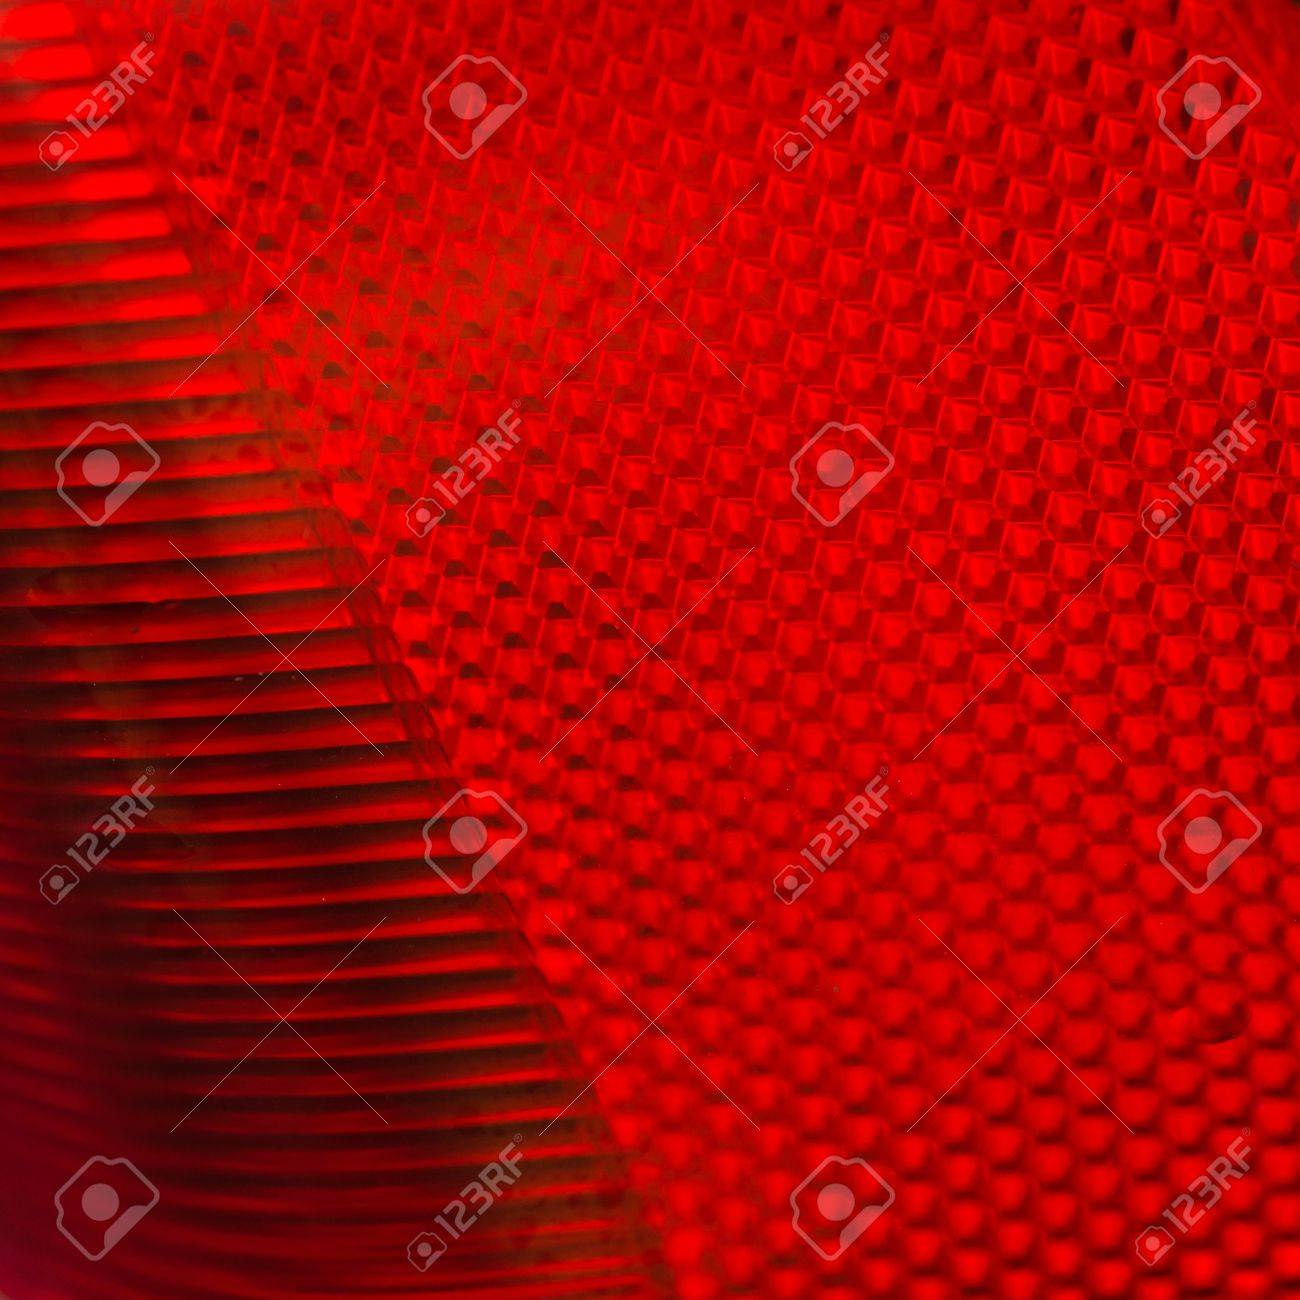 An Abstract Macro Shot Of A Red Car Brake Light Stock Photo, Picture ... for Brake Light Texture  181obs